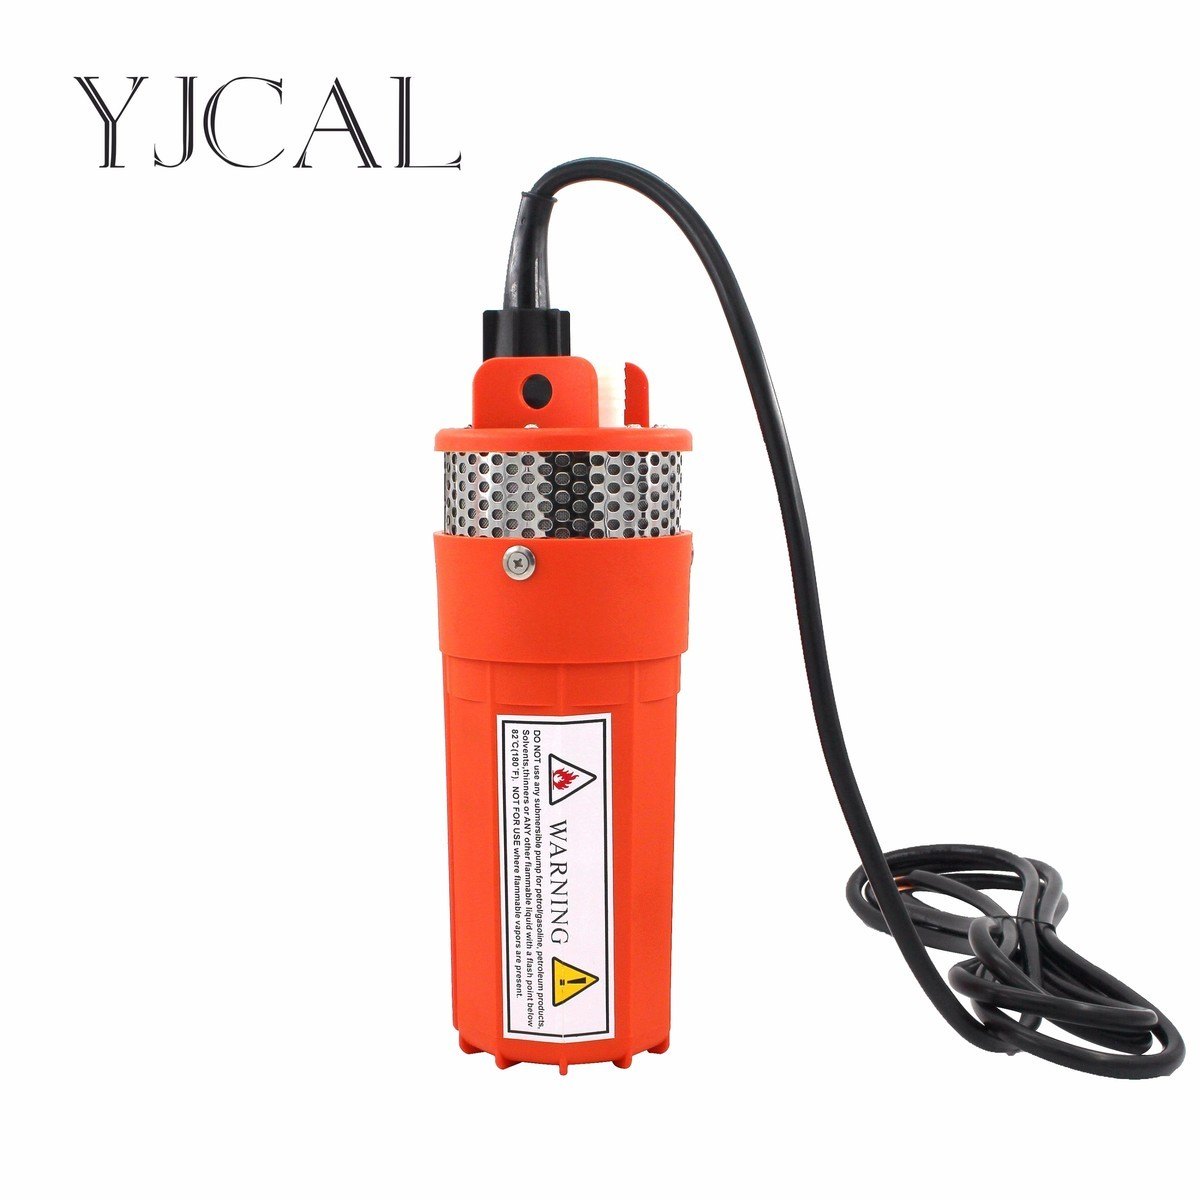 DC12/24V Submersible Solar Water Pump 70M Lift Small Power  For Outdoor Garden Fountain Deep Well Aquarium Aquario 1 1kw 1 5hp submersible solar water pump reorder rate up to 80% solar water system